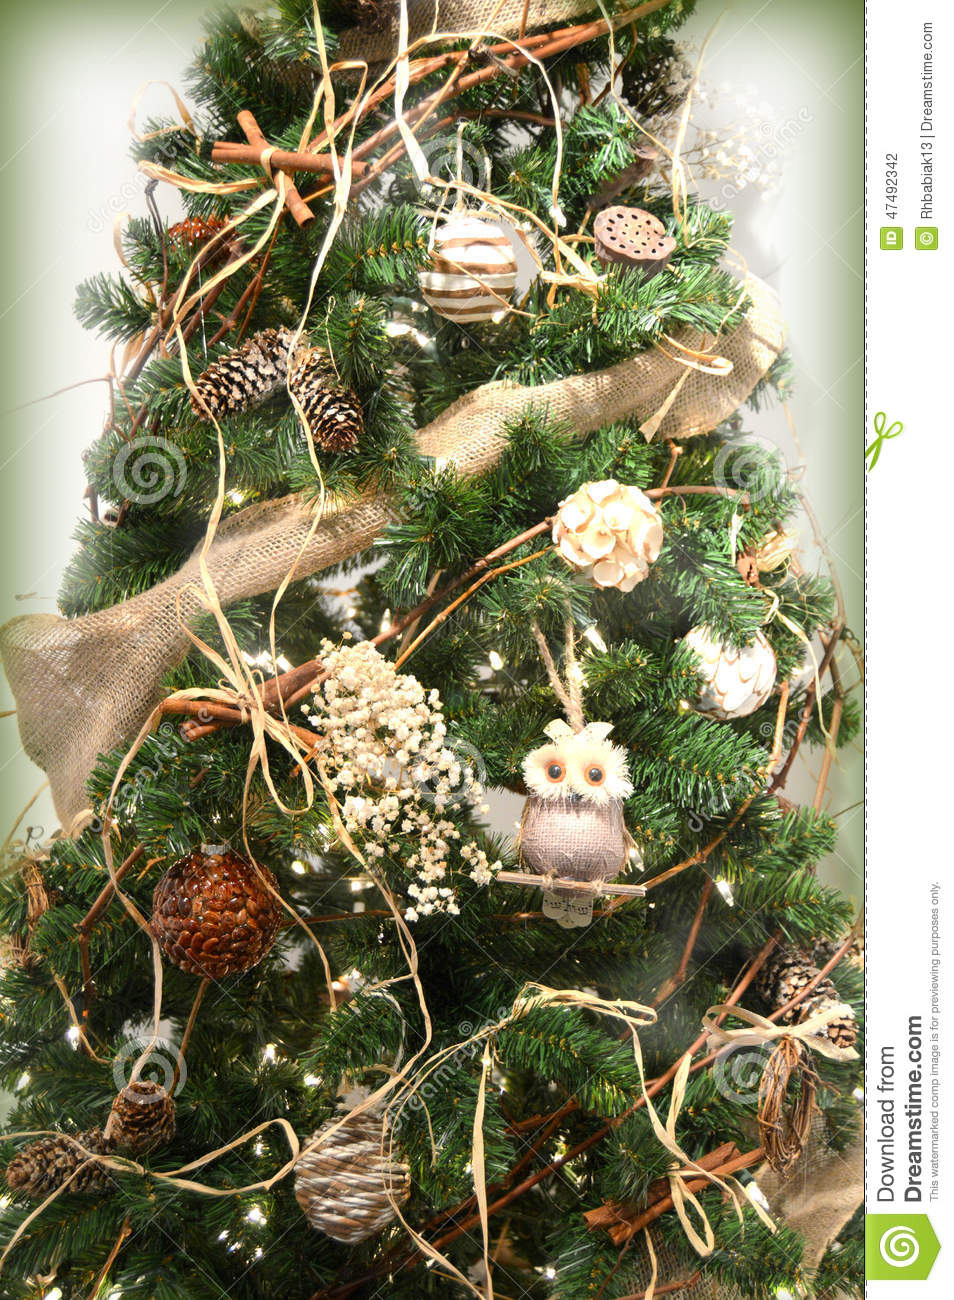 Christmas Tree Decorated With Owls